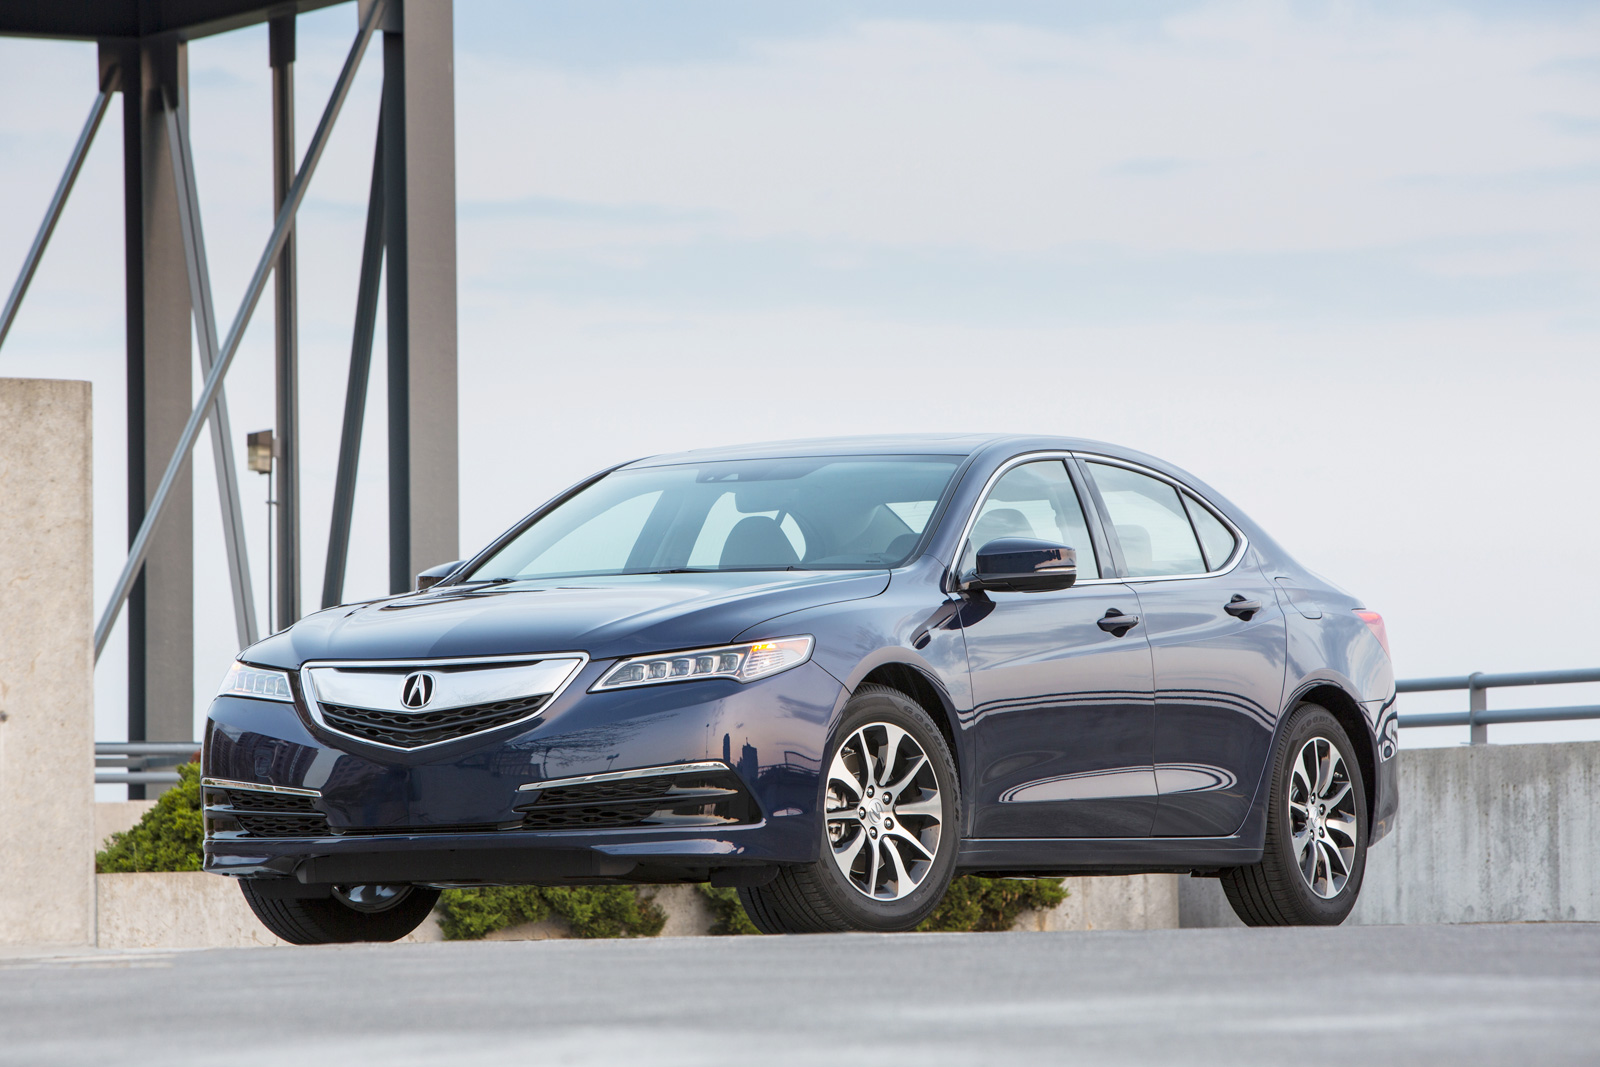 2017 acura tlx price bumped up to 32 820 news. Black Bedroom Furniture Sets. Home Design Ideas